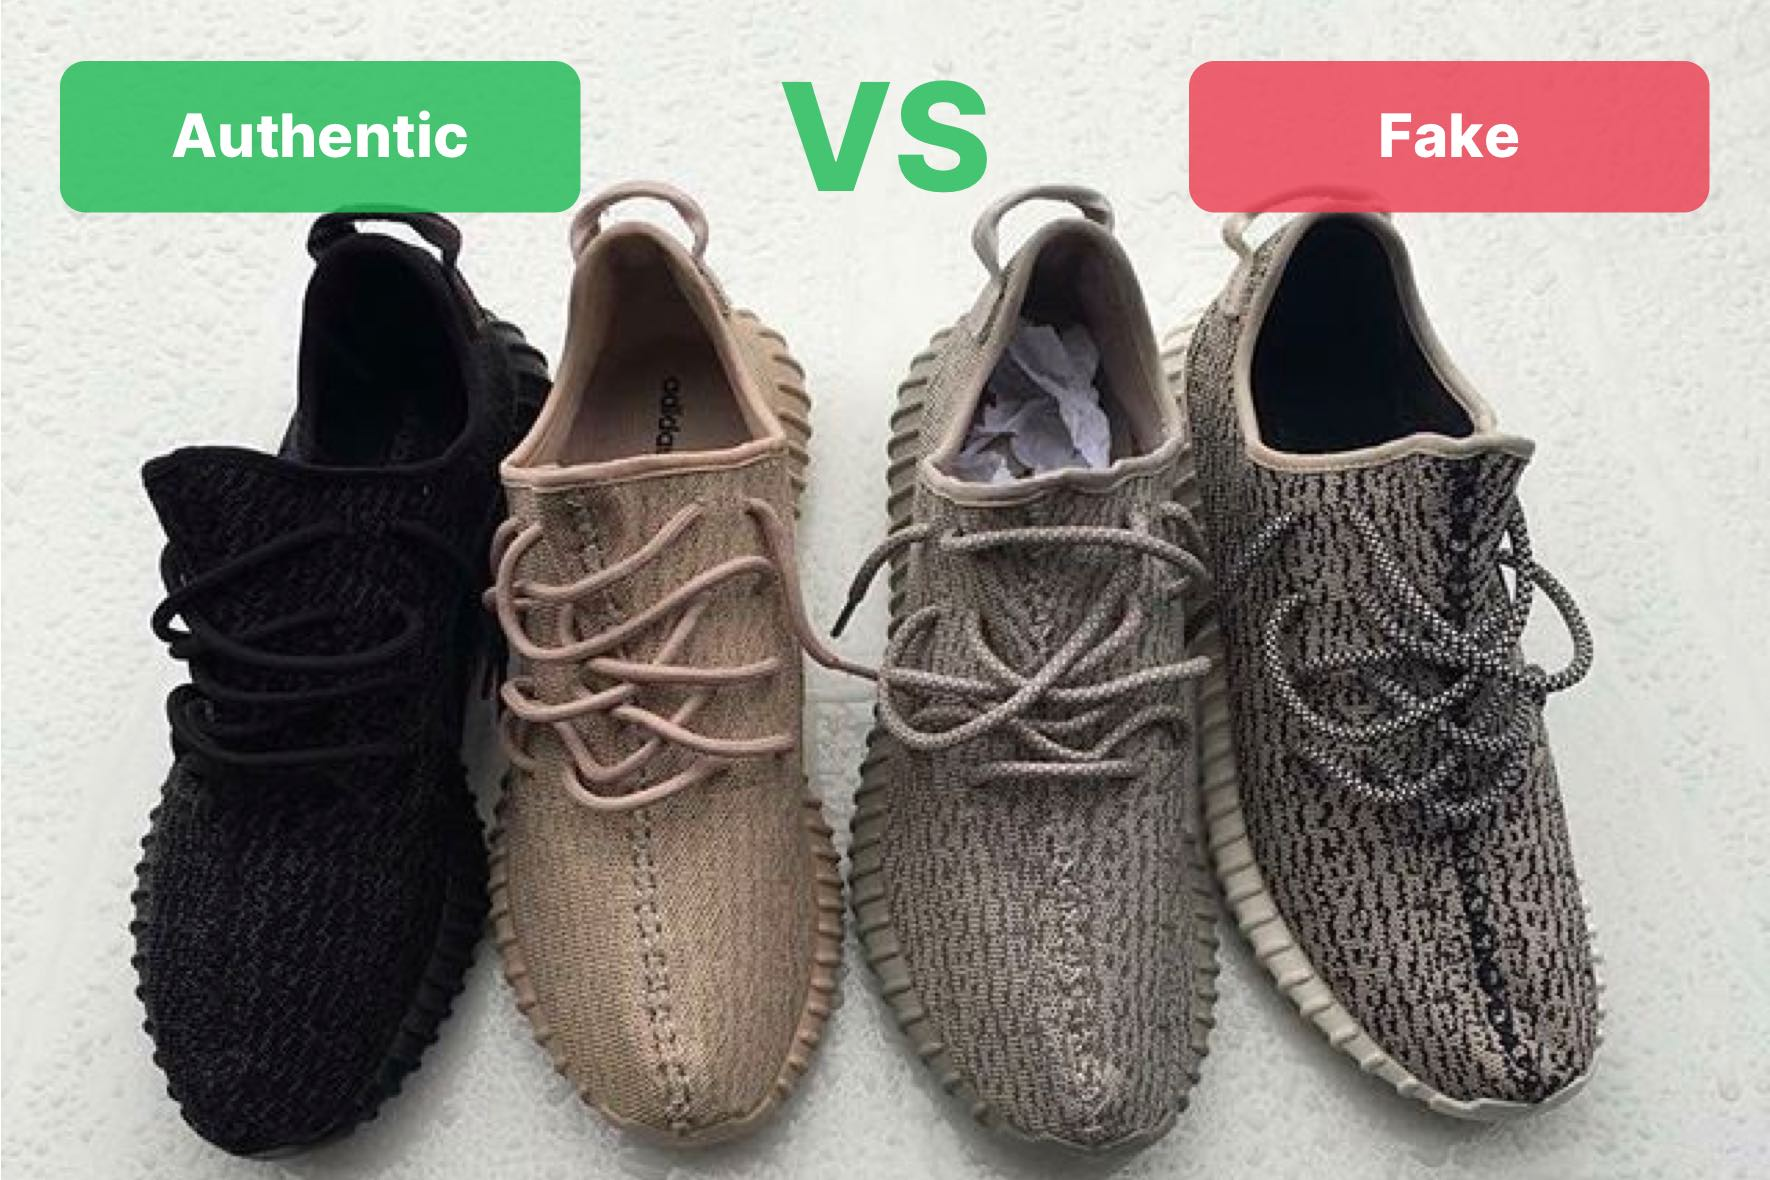 ccec628cb68 Yeezy 350 Fake Vs Real: Turtle Dove, Pirate Black, Oxford Tan, Moonrock